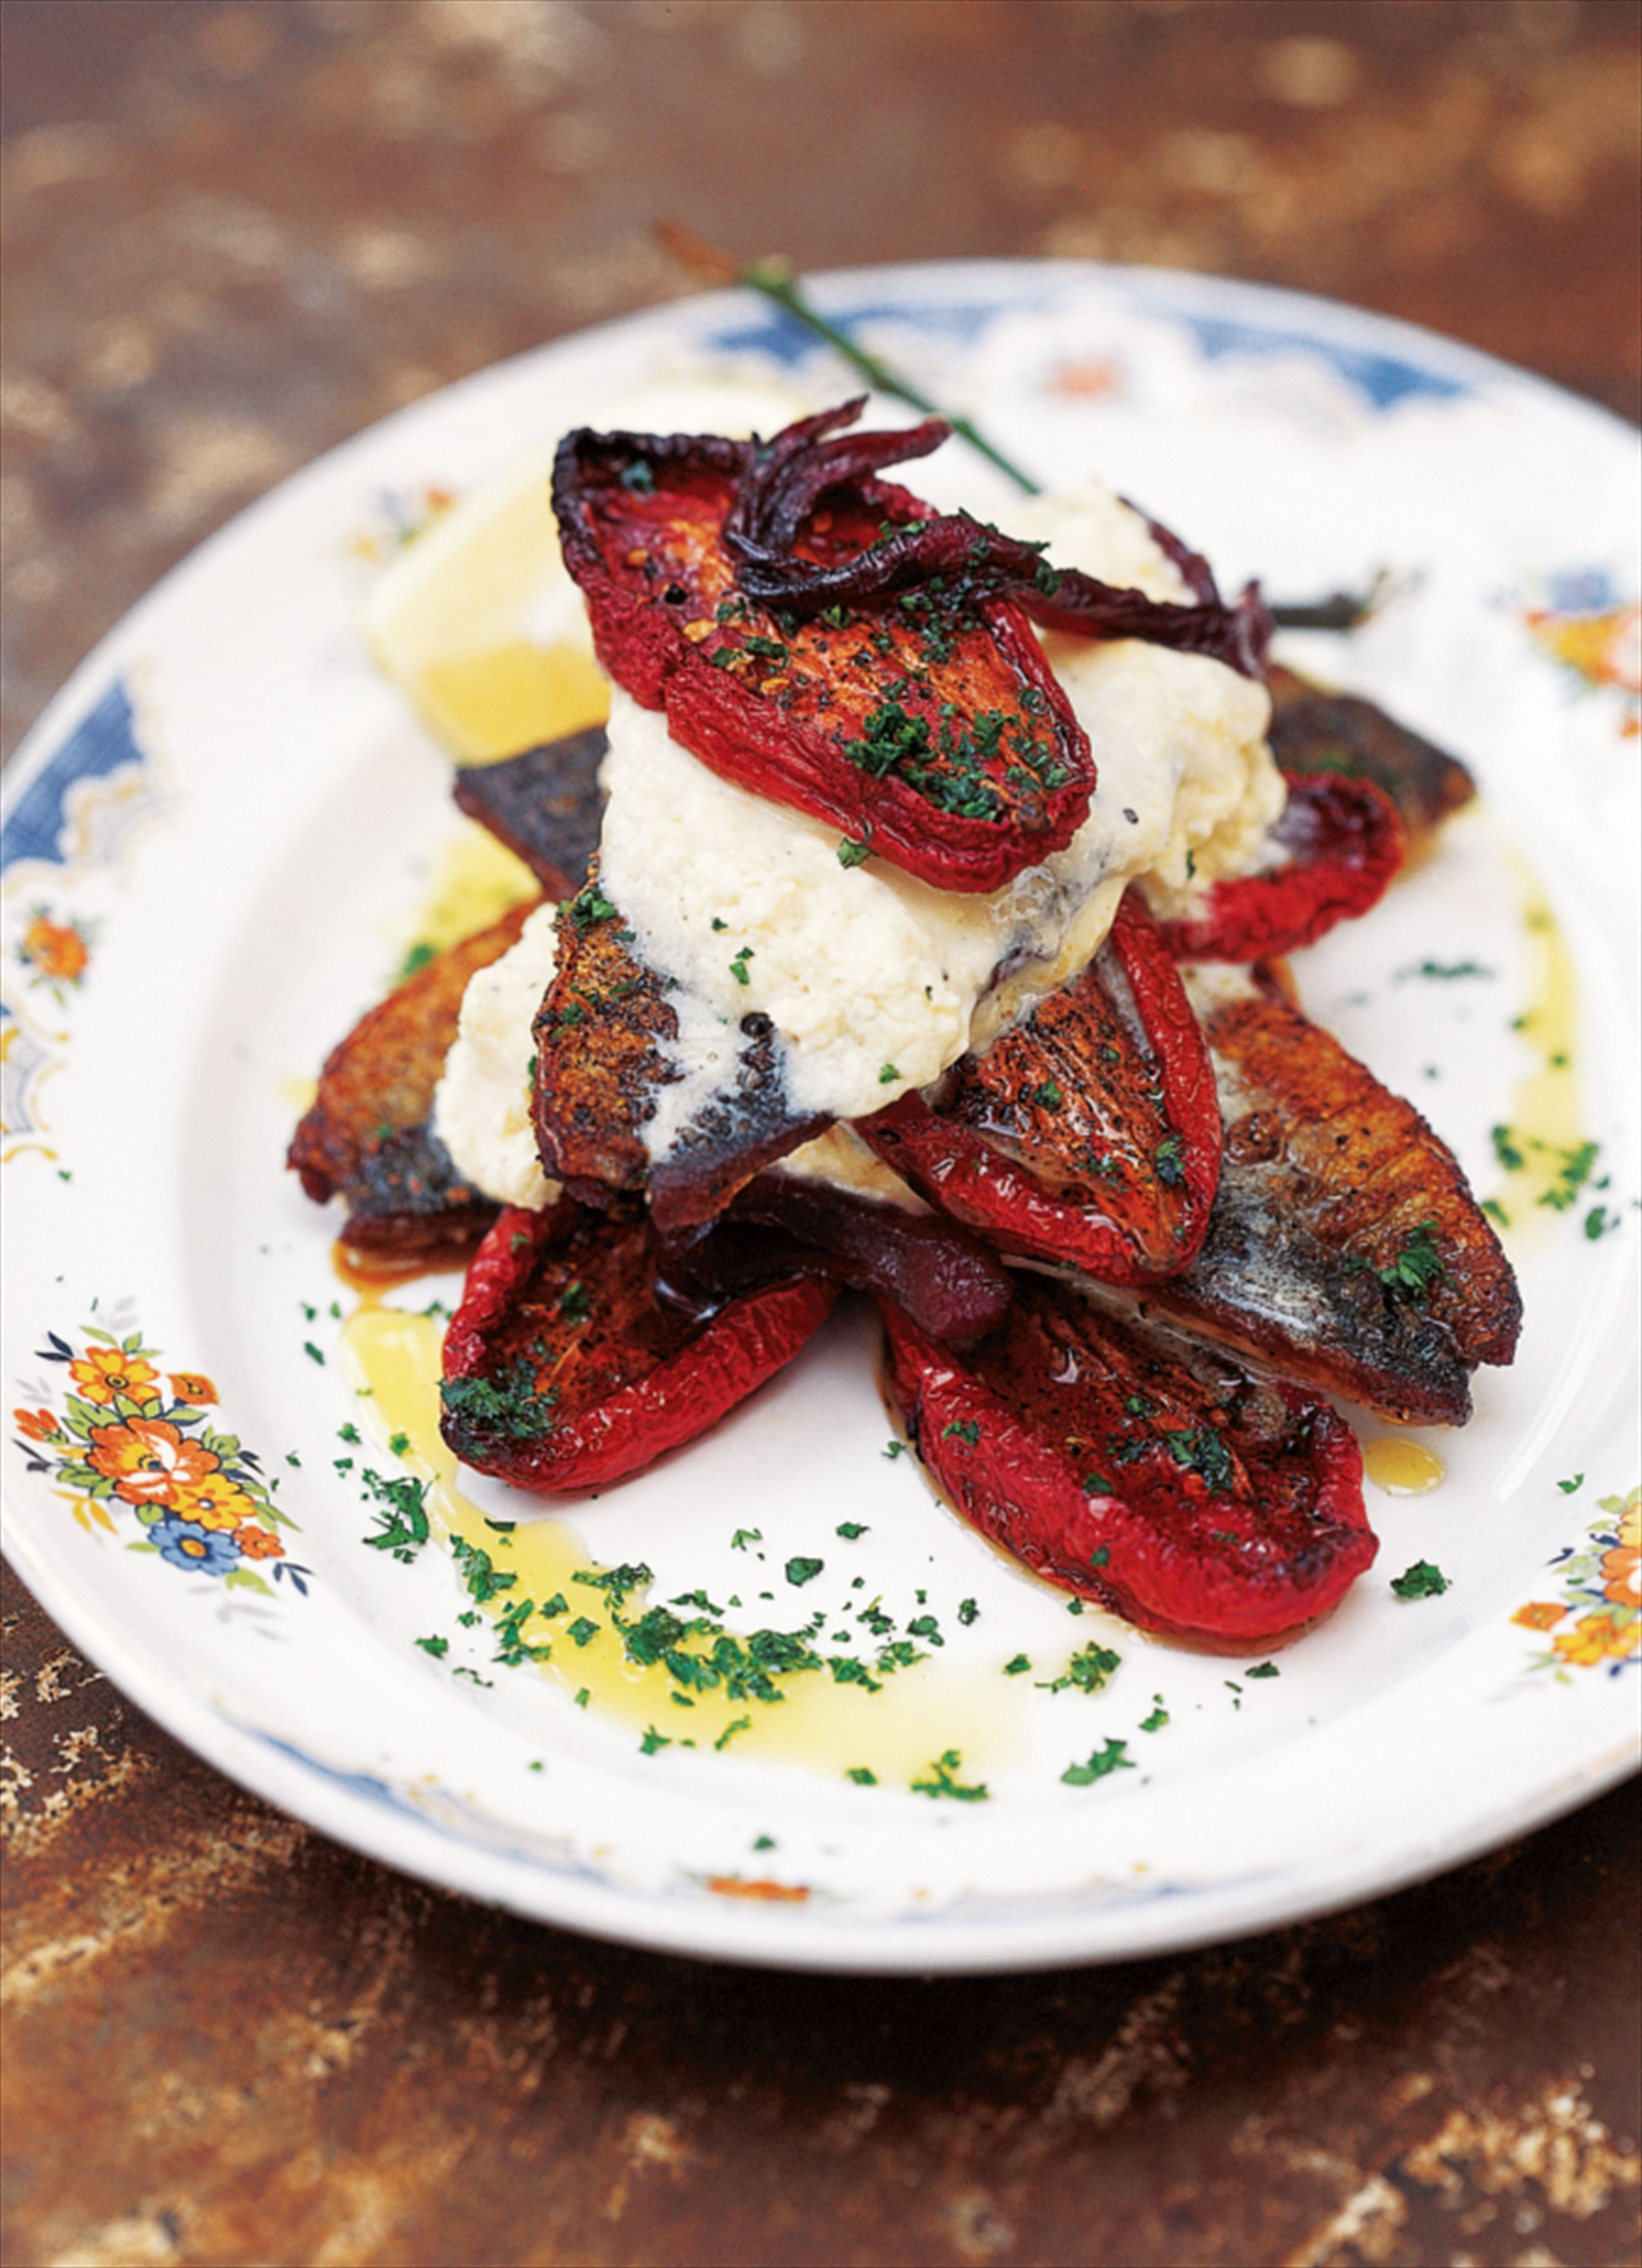 Mackerel fillets with roasted tomatoes and horseradish cream